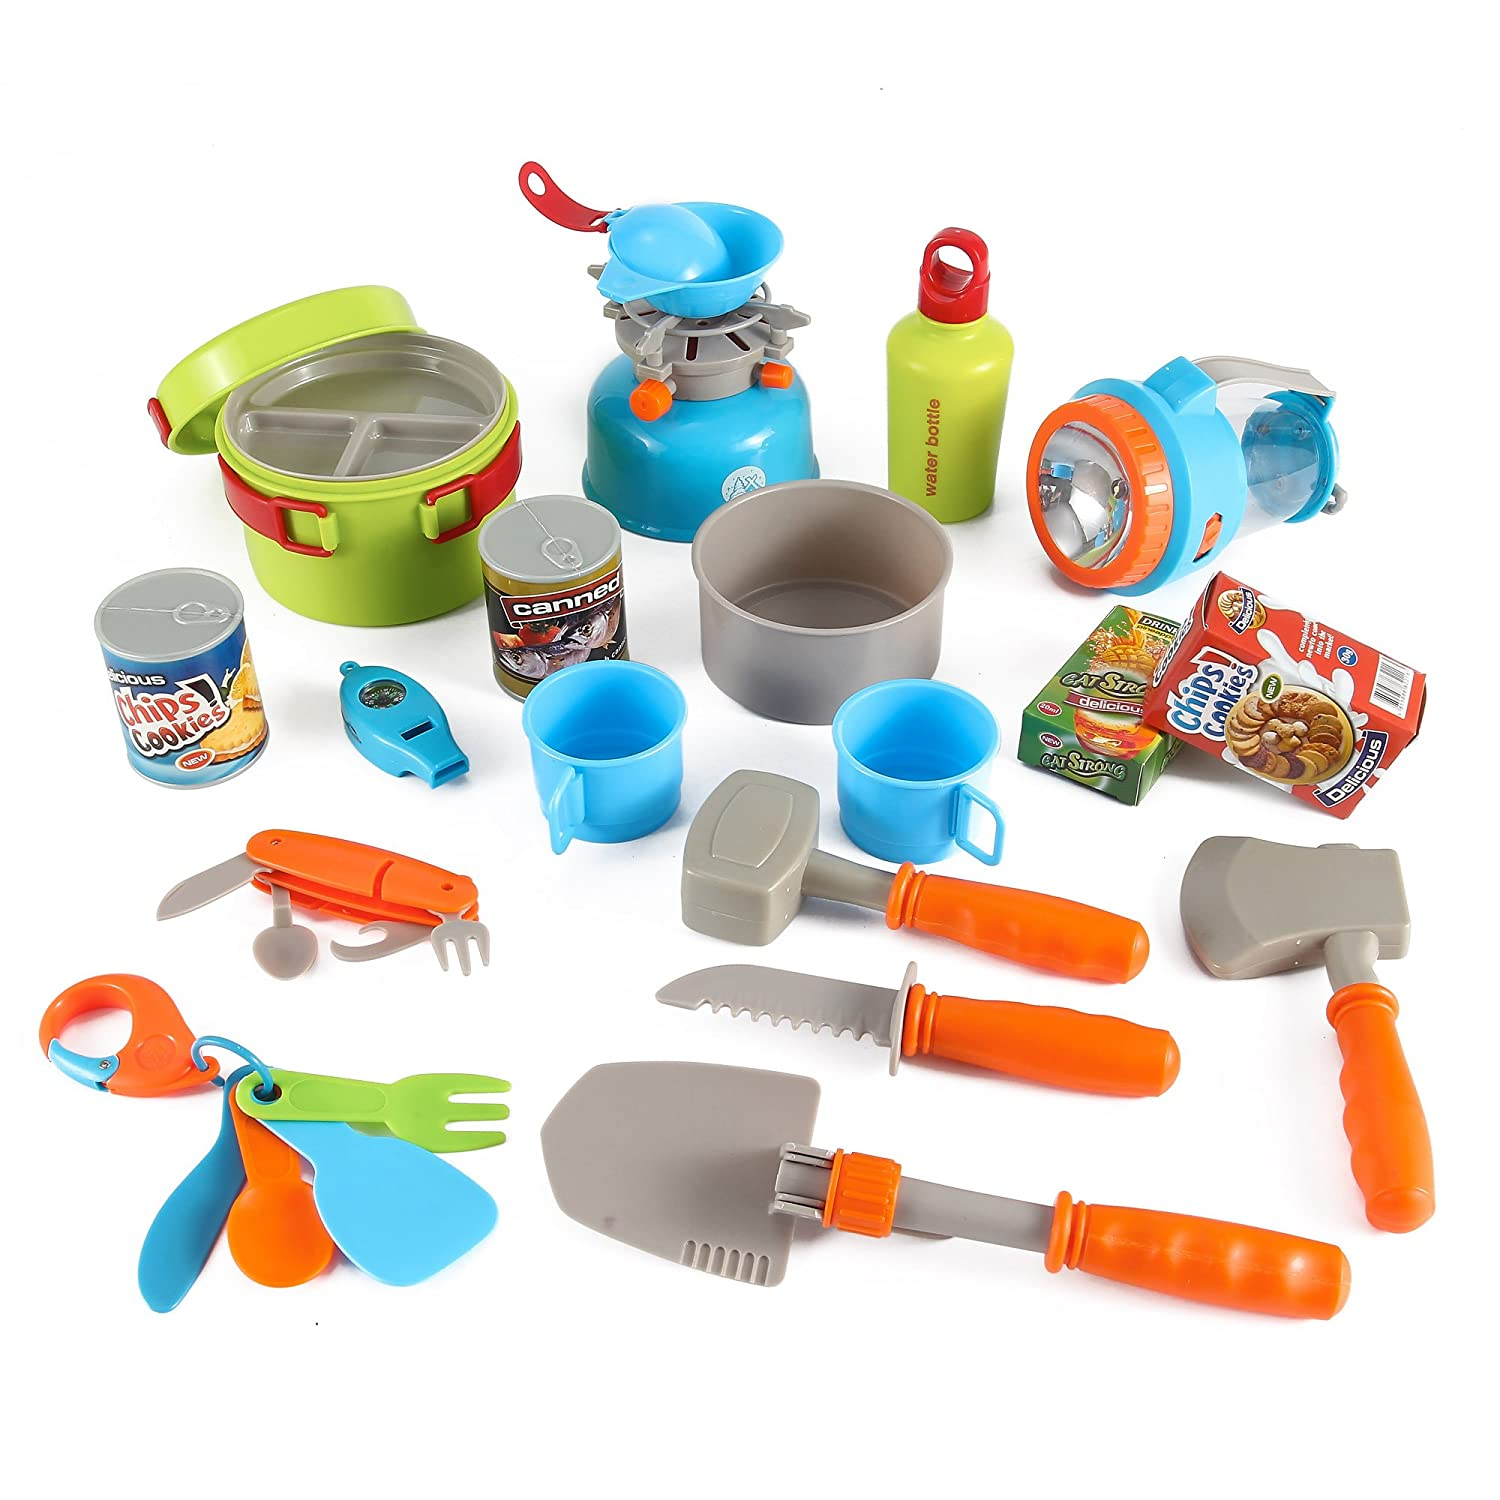 Little Explorers 20 Piece Camping Gear Toy Tools Play Set for Kids Liberty Imports